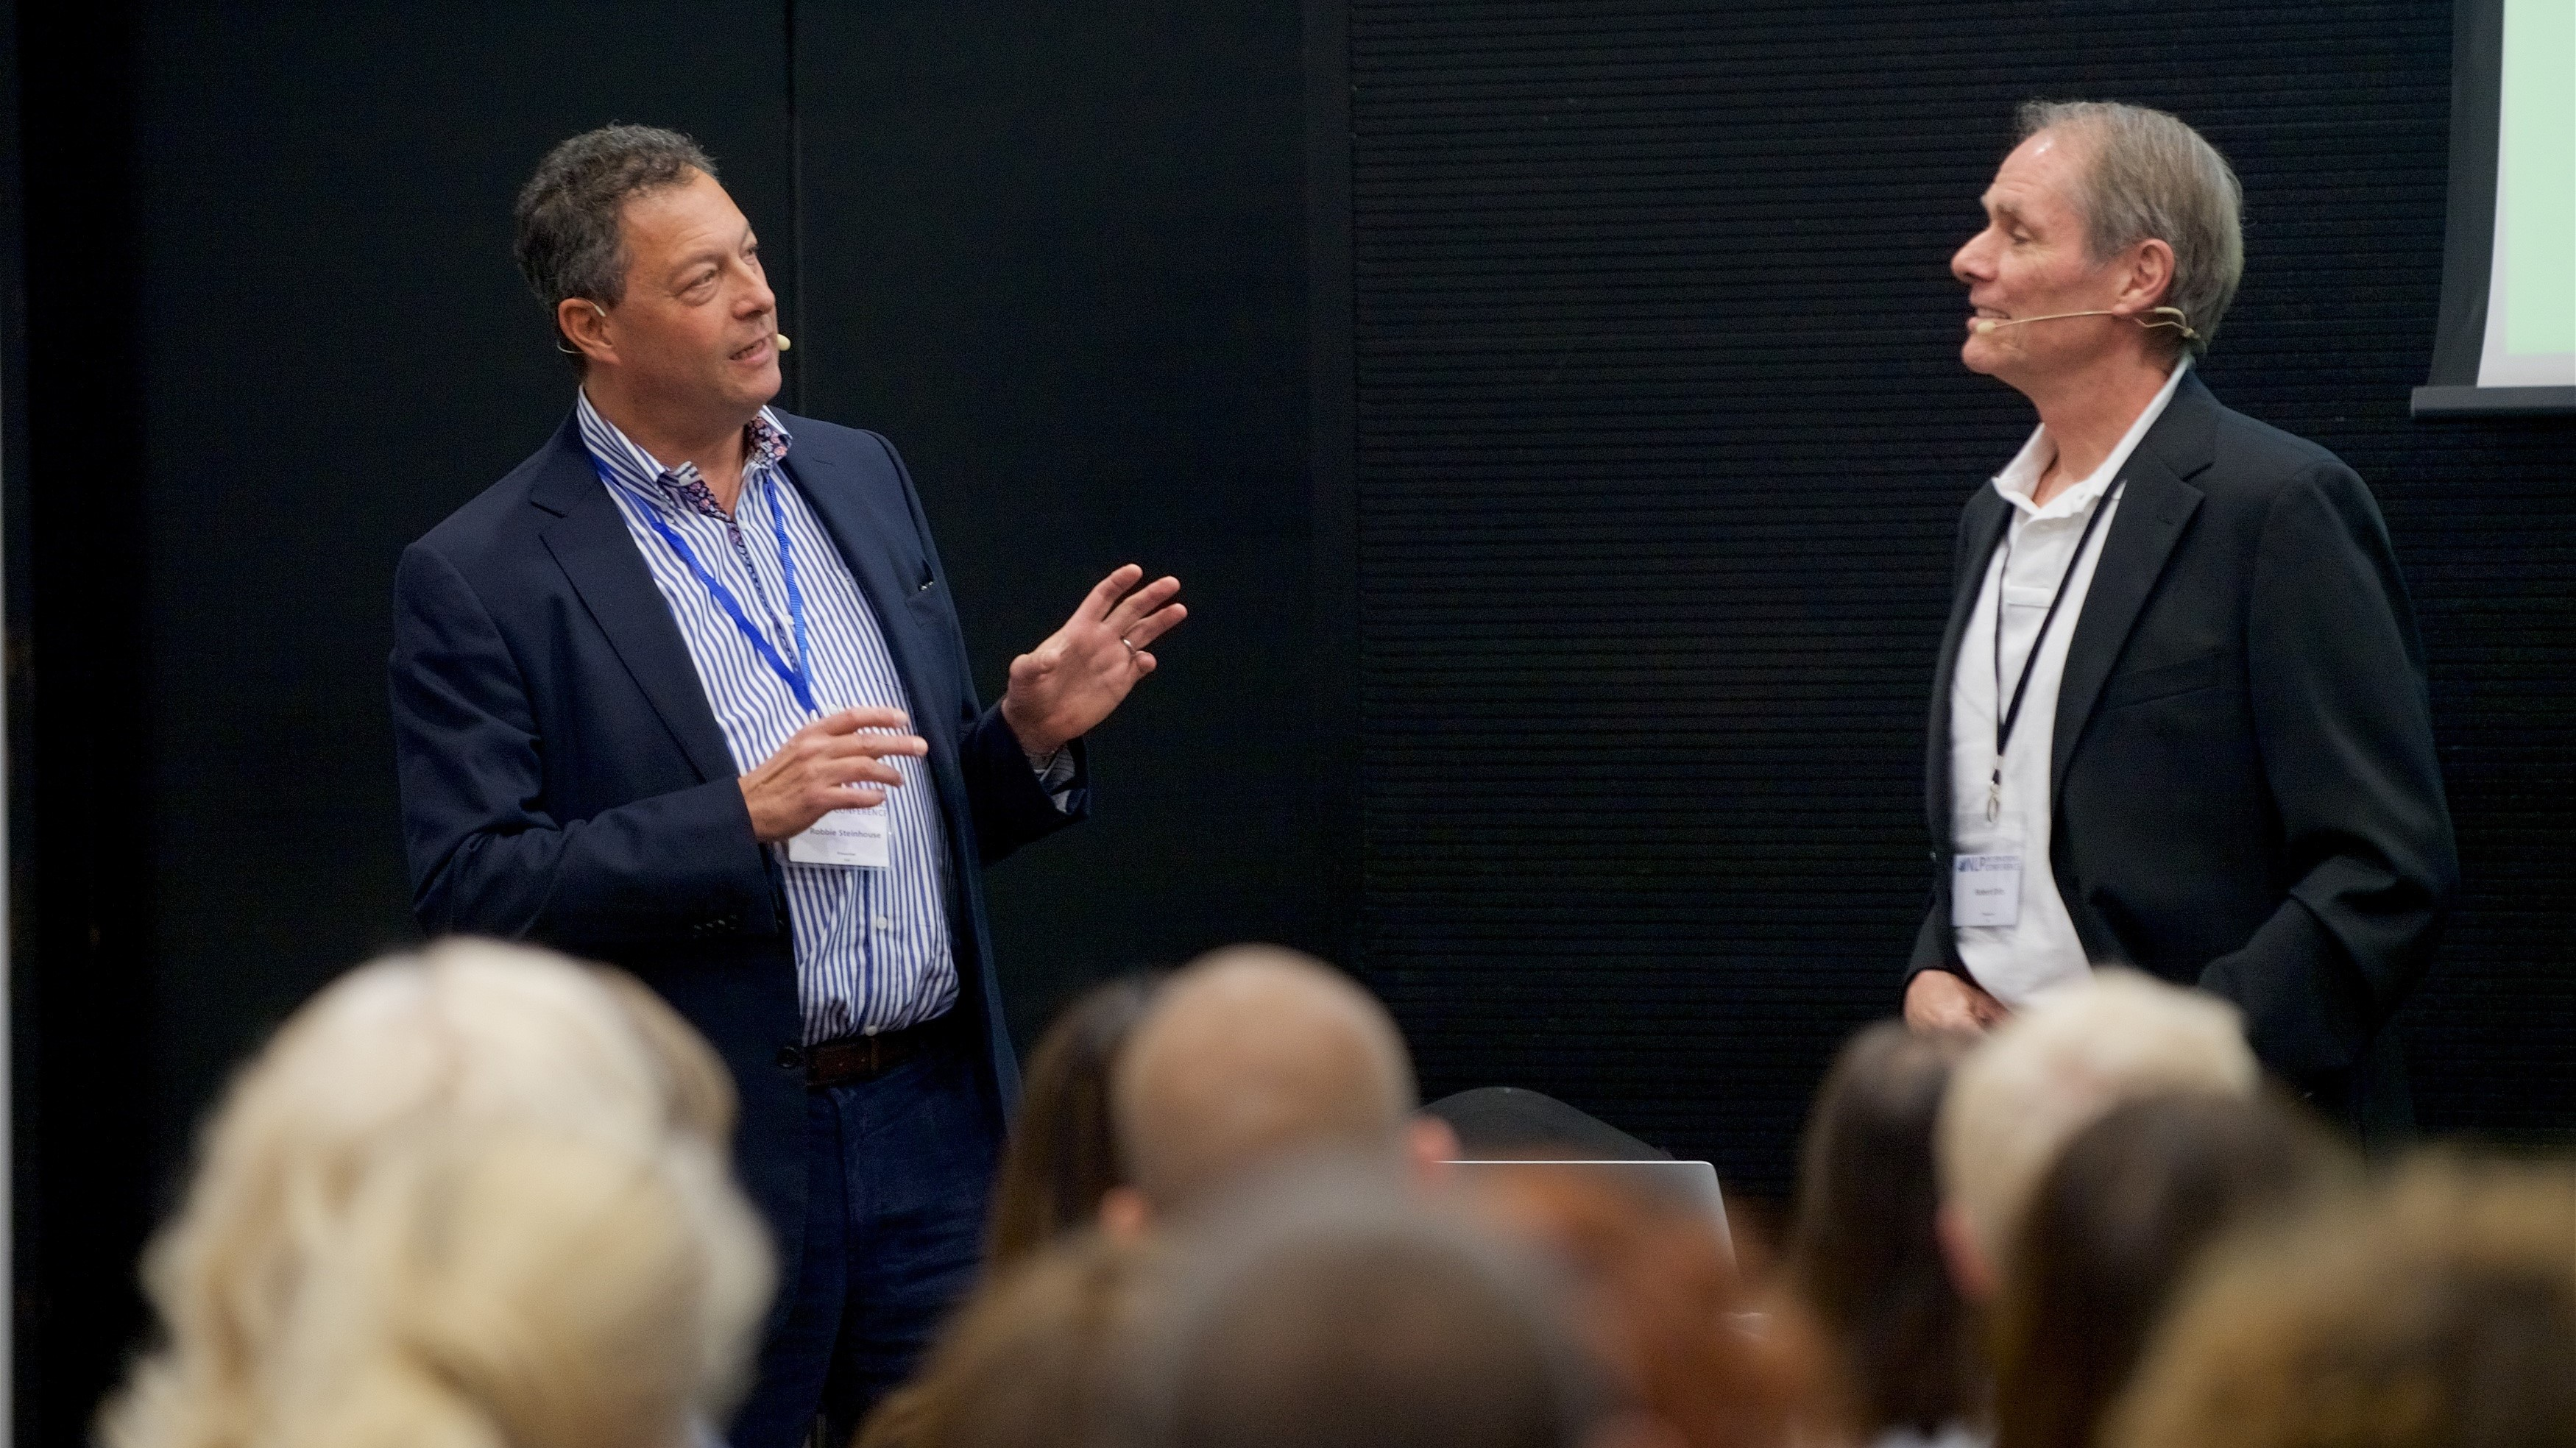 Robbie%20Steinhouse%20from%20NLP%20School%20at%20The%20NLP%20Conference%20in%202019.jpg